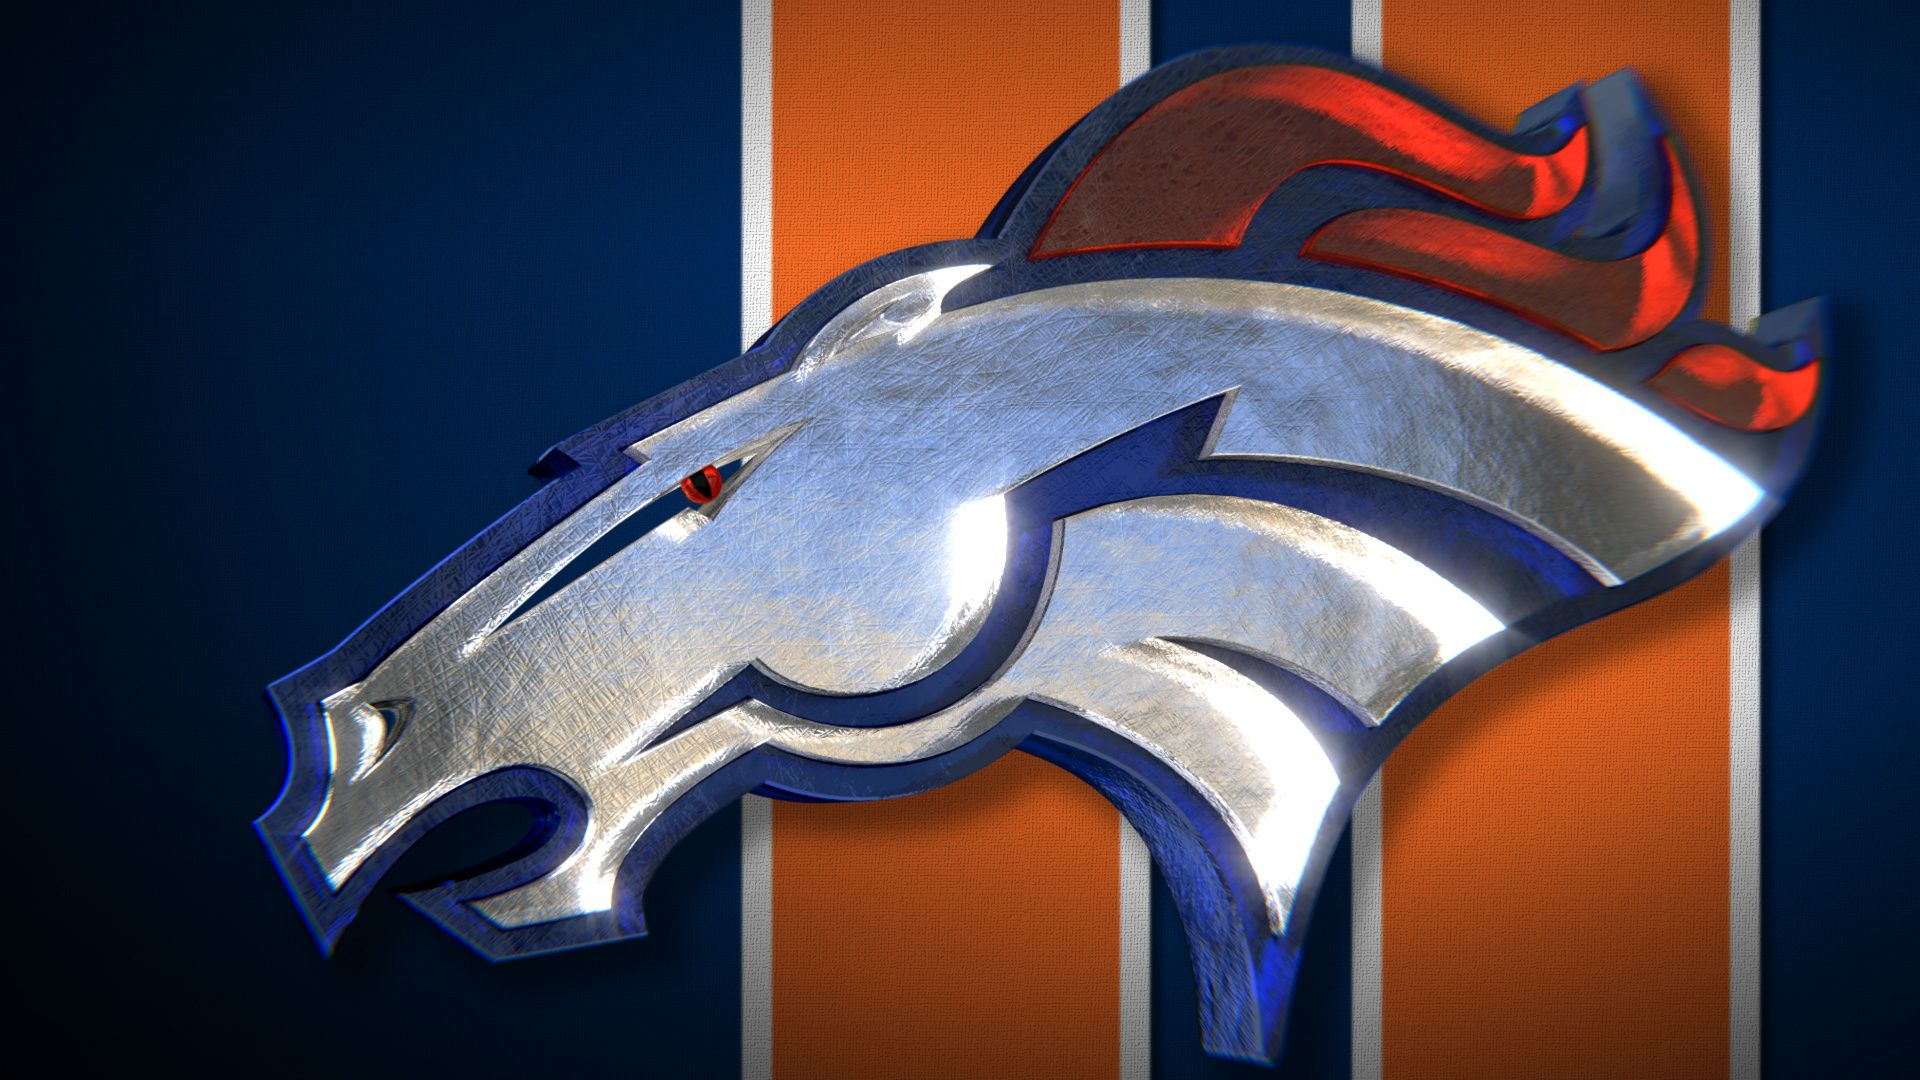 Denver Broncos 1080p Denver Broncos Wallpaper Wallpaper With